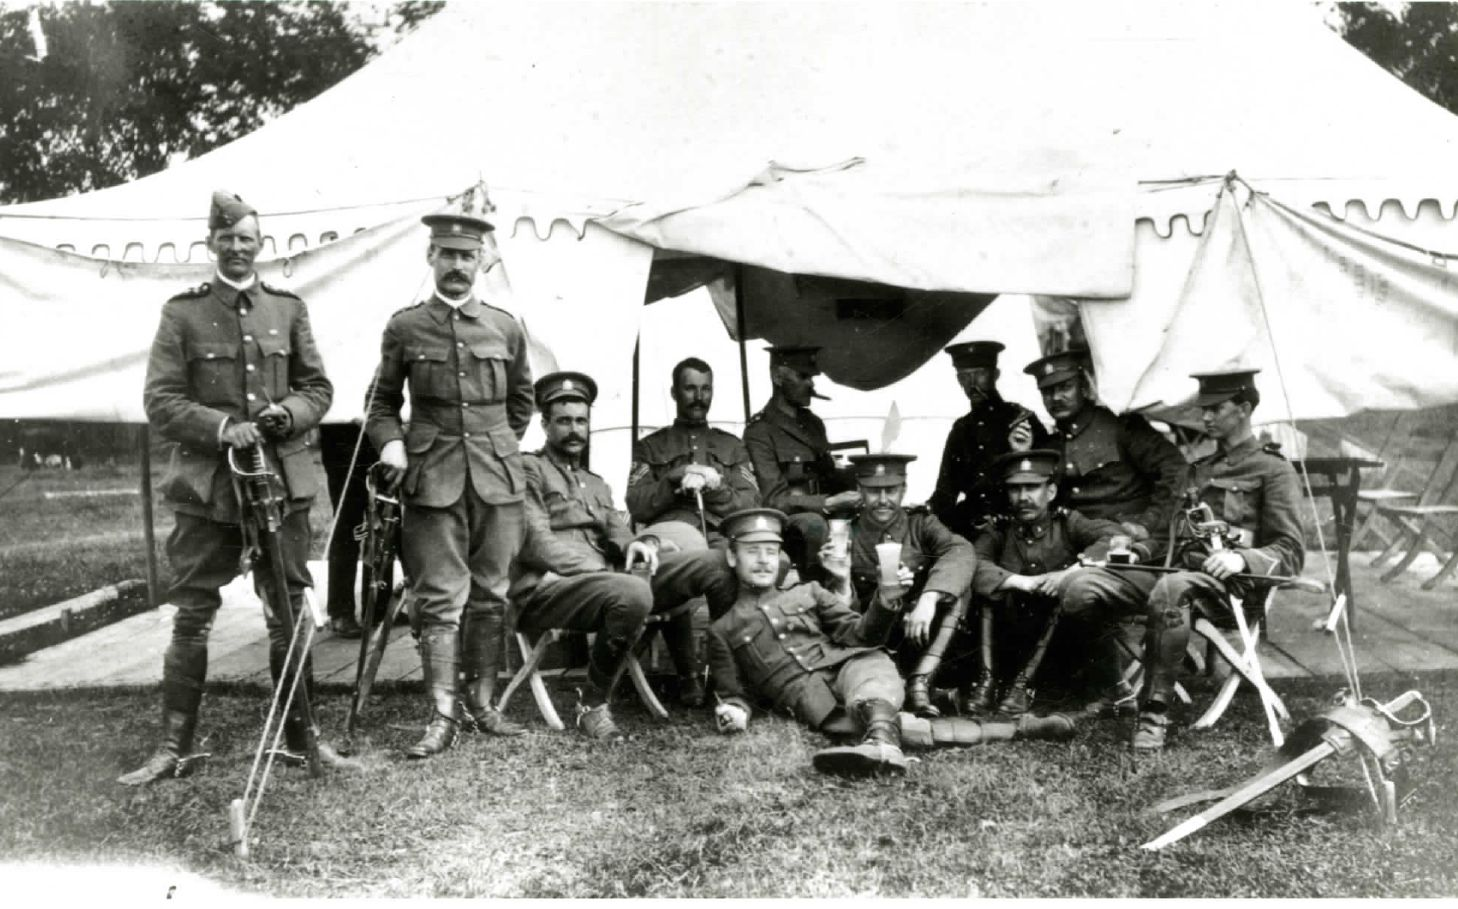 Corps of Guides group at Niagara-on-the-lake MIKAN PA-111891, Library and archives canada